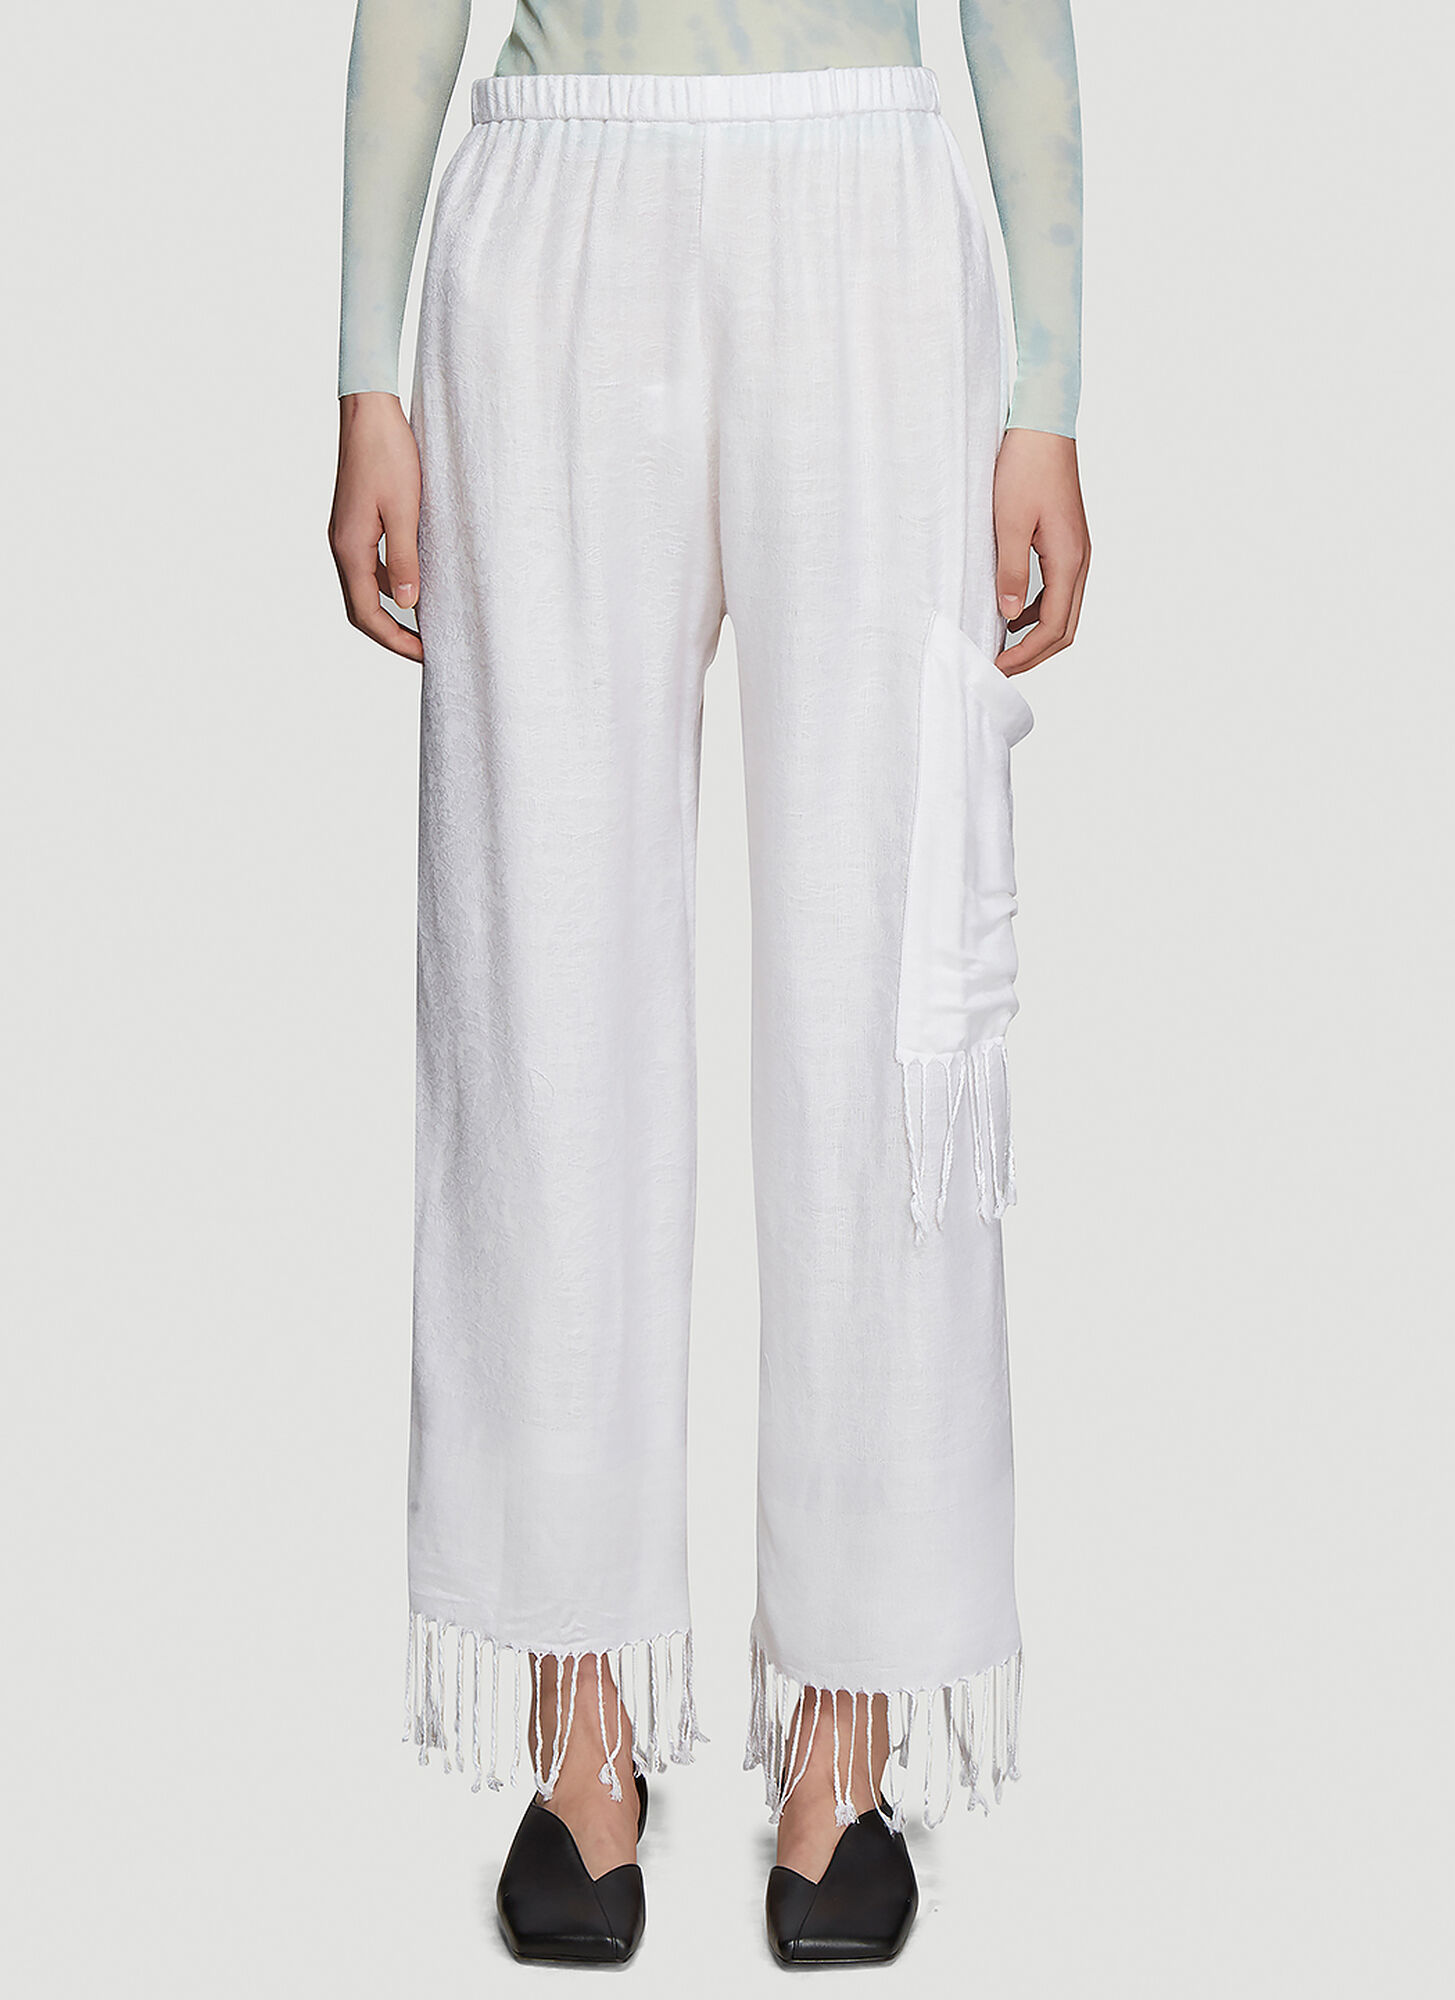 Collina Strada Pashmina Pants in White